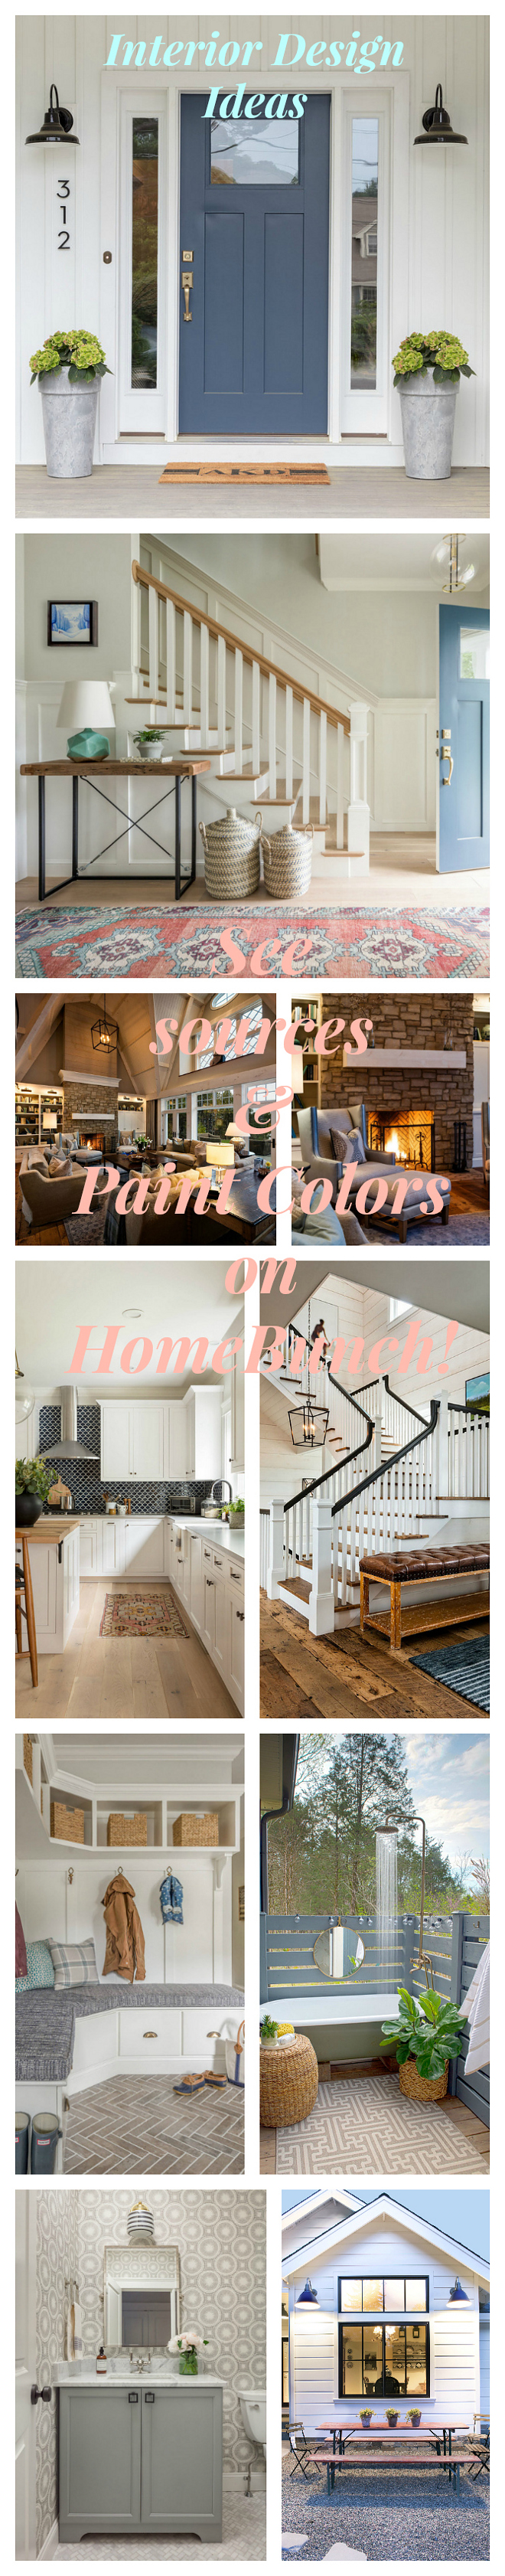 Interior Design Ideas featuring designer sources, home decor and paint colors - a weekly series on Home Bunch